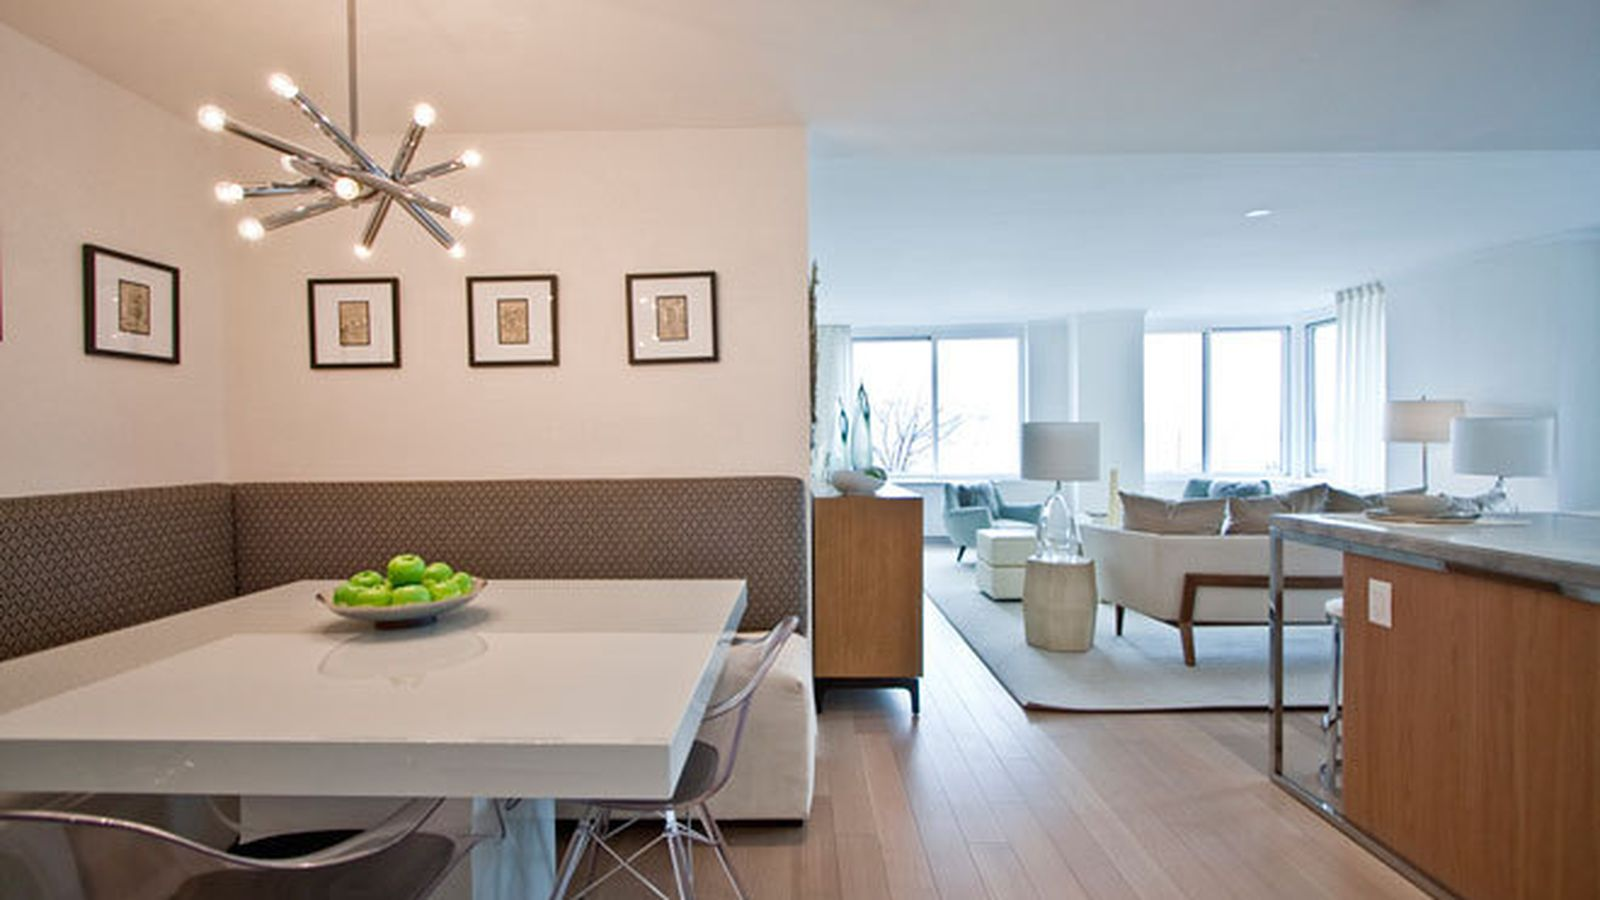 First look inside battery park city 39 s new super sized for 22 river terrace condo conversion